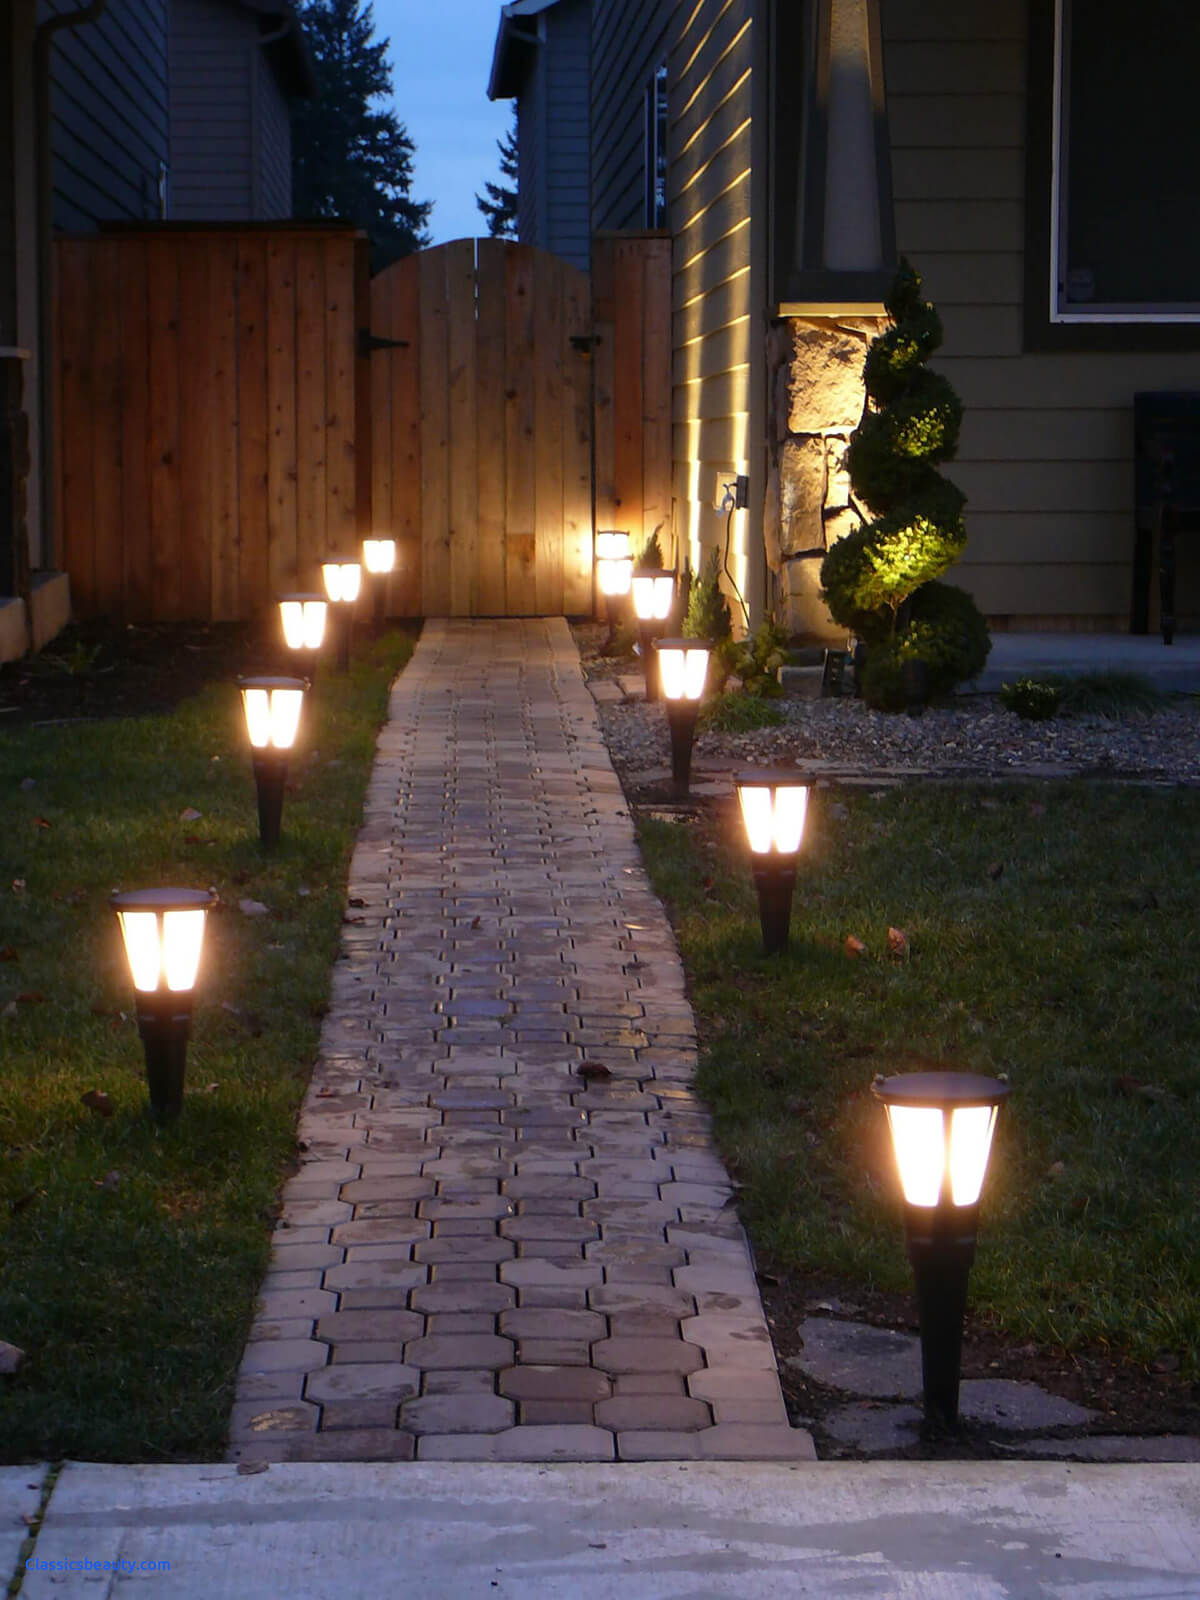 25 Best Landscape Lighting Ideas And Designs For 2021